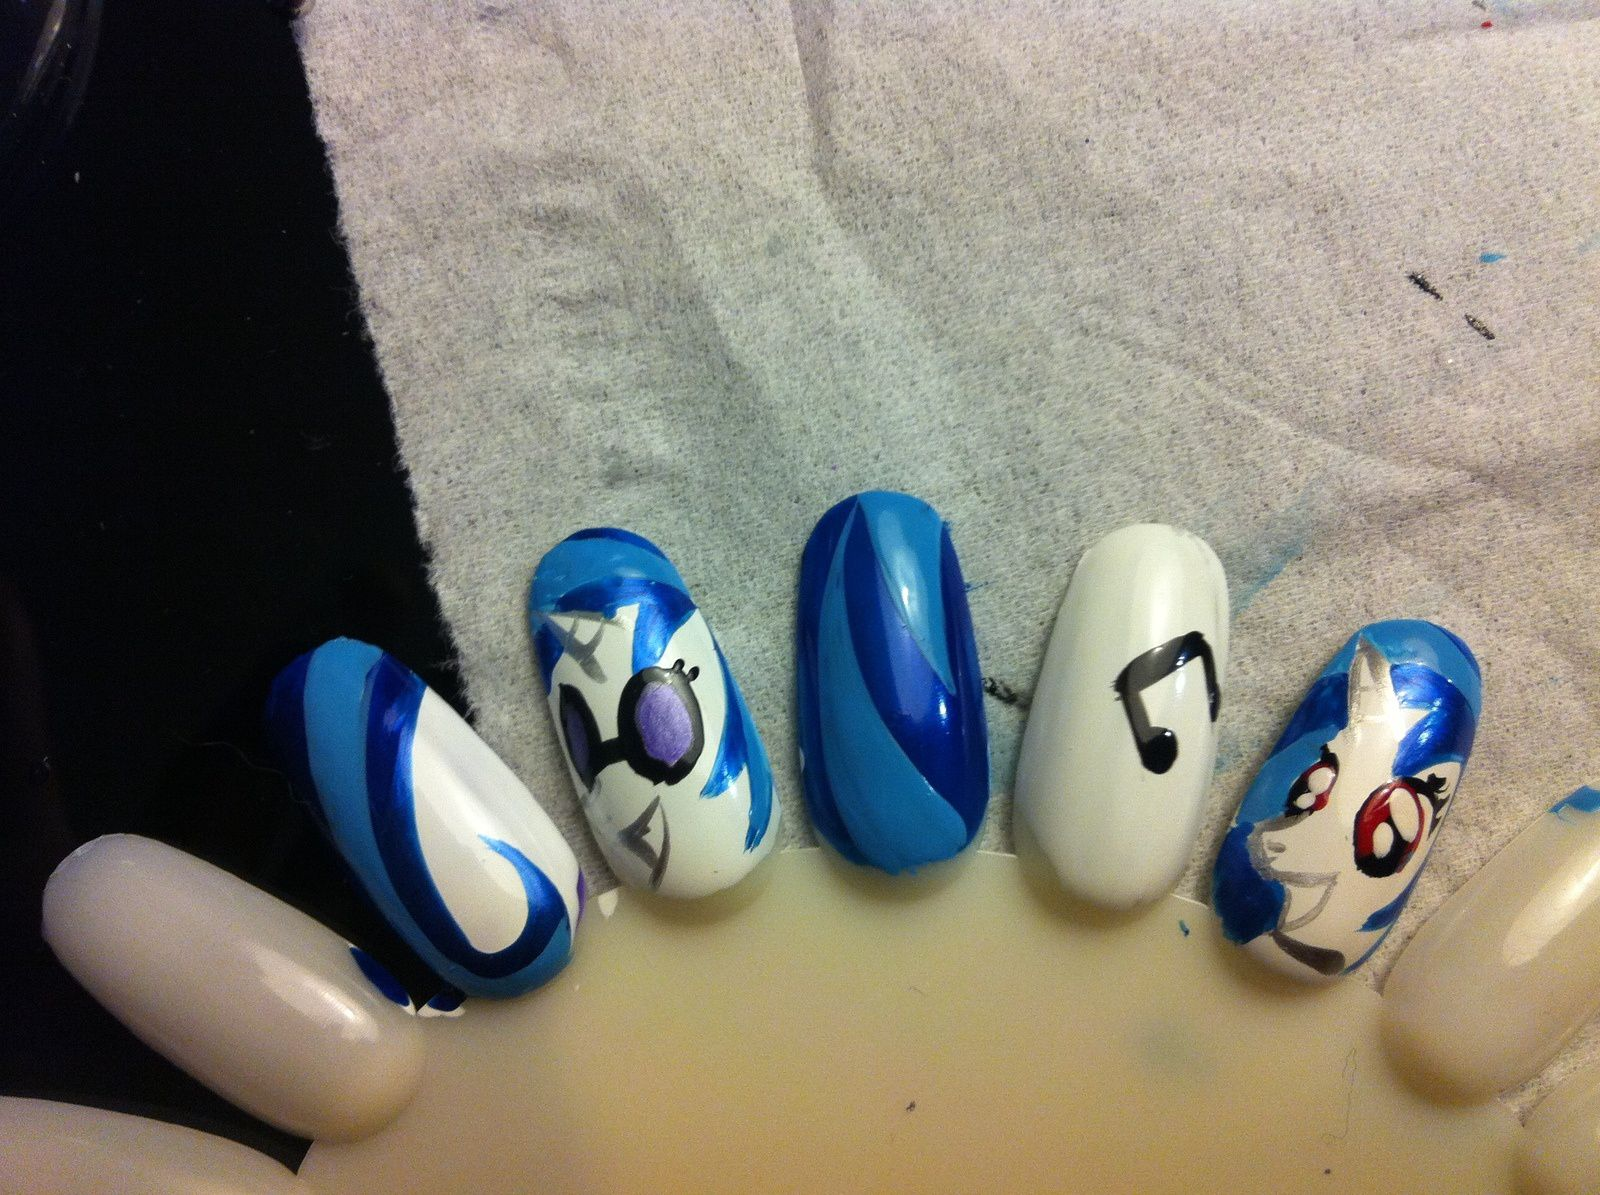 nailstorming en chanson / my little pony nails dj pon3